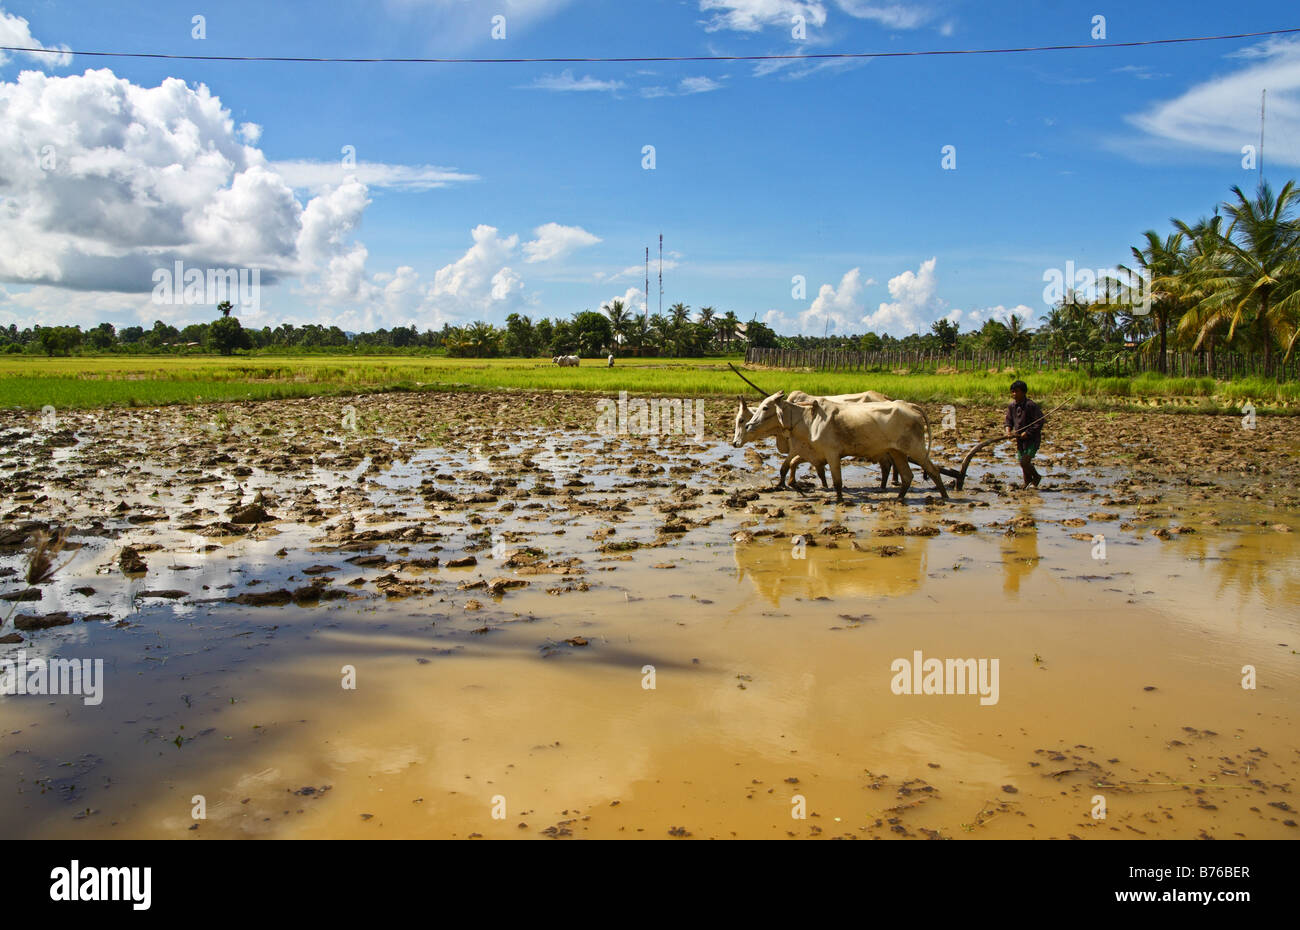 Man with 2 white oxen plowing a rice field, Kampot South Cambodia - Stock Image